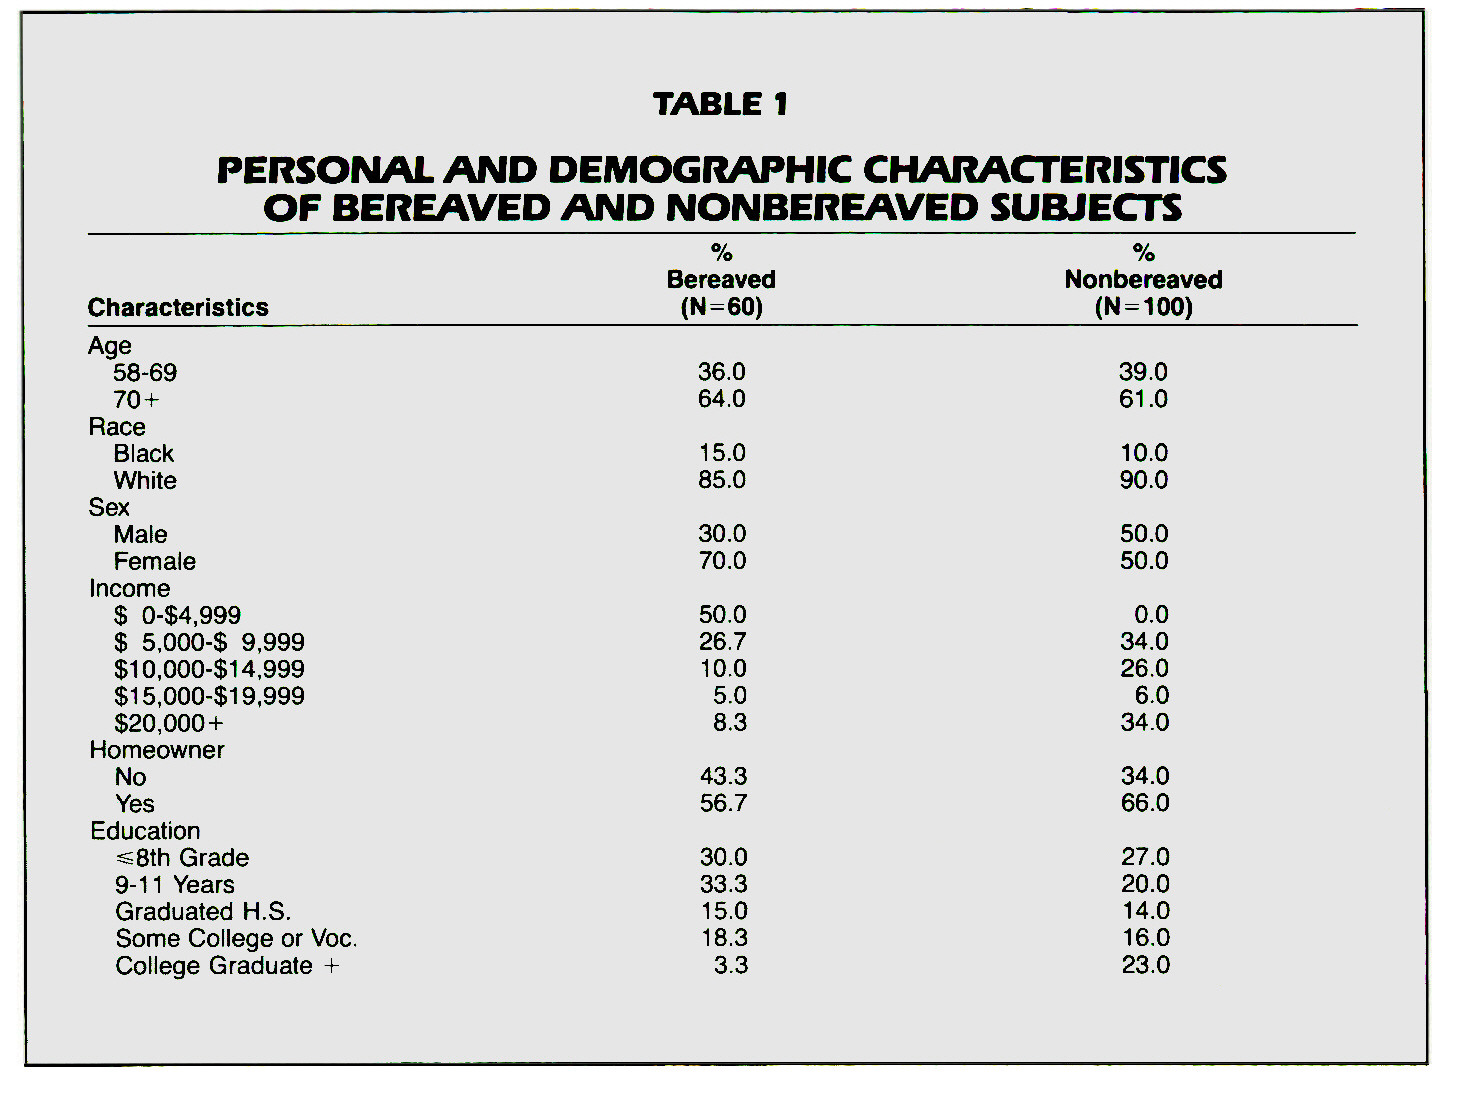 TABLE 1PERSONAL AND DEMOGRAPHIC CHARACTERISTICS OF BEREAVED AND NONBEREAVED SUBJECTS